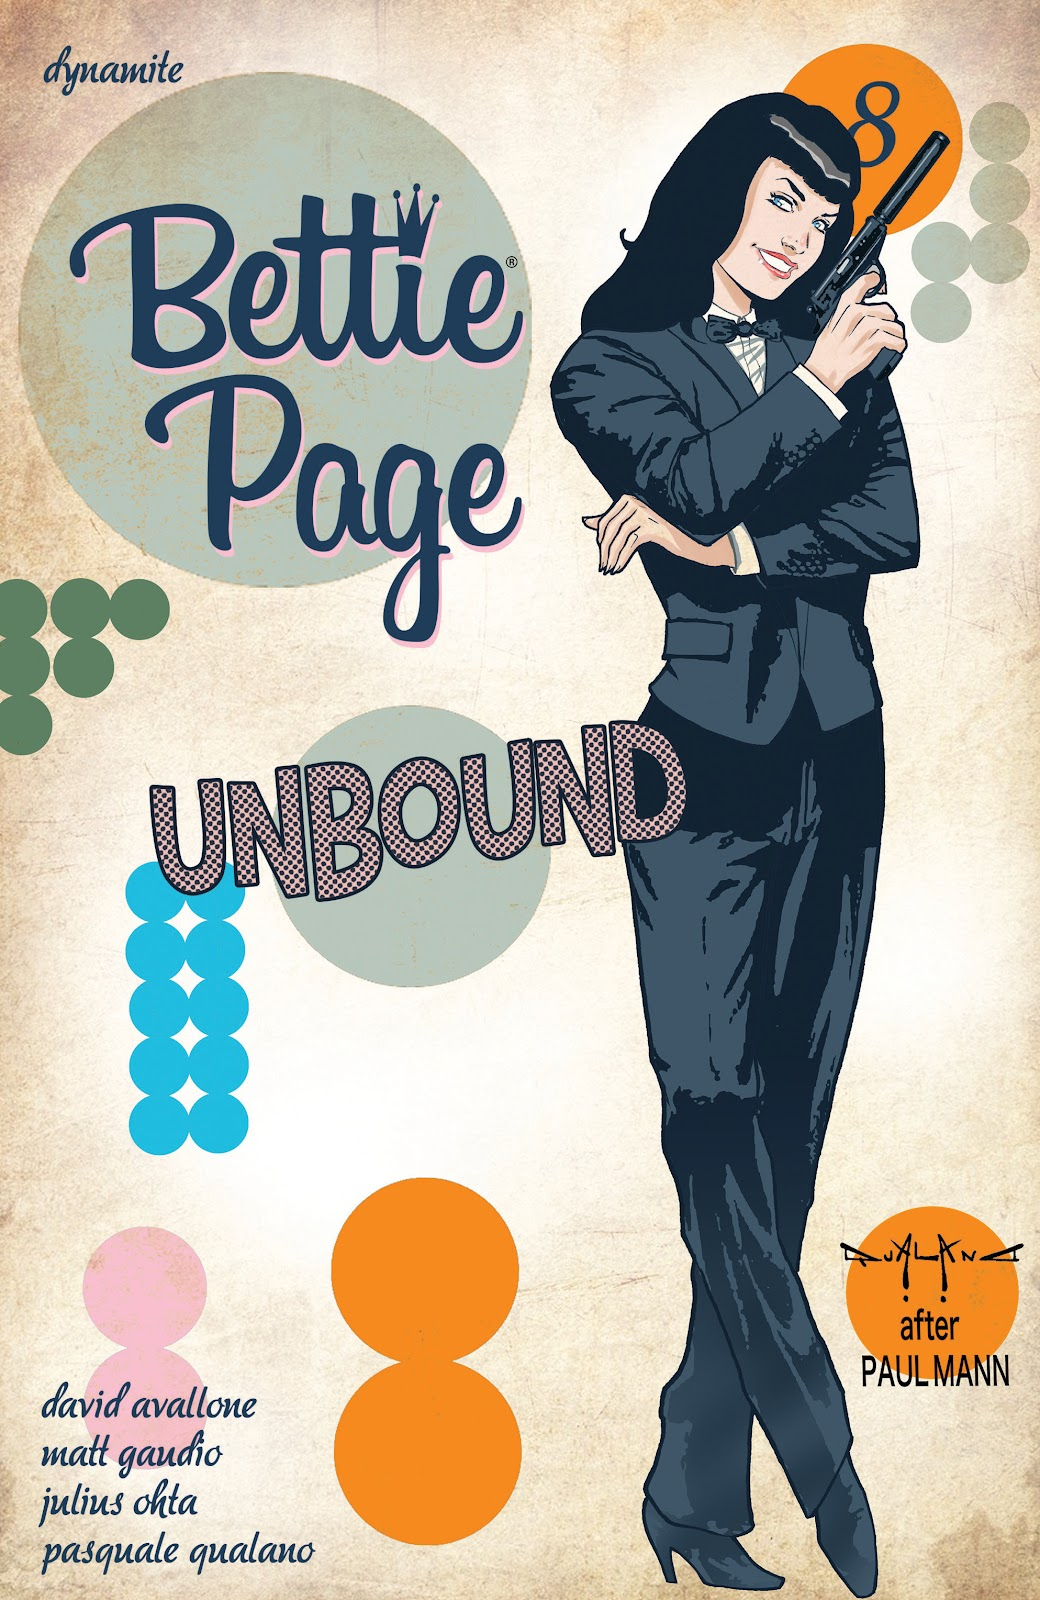 Read online Bettie Page: Unbound comic -  Issue #8 - 4